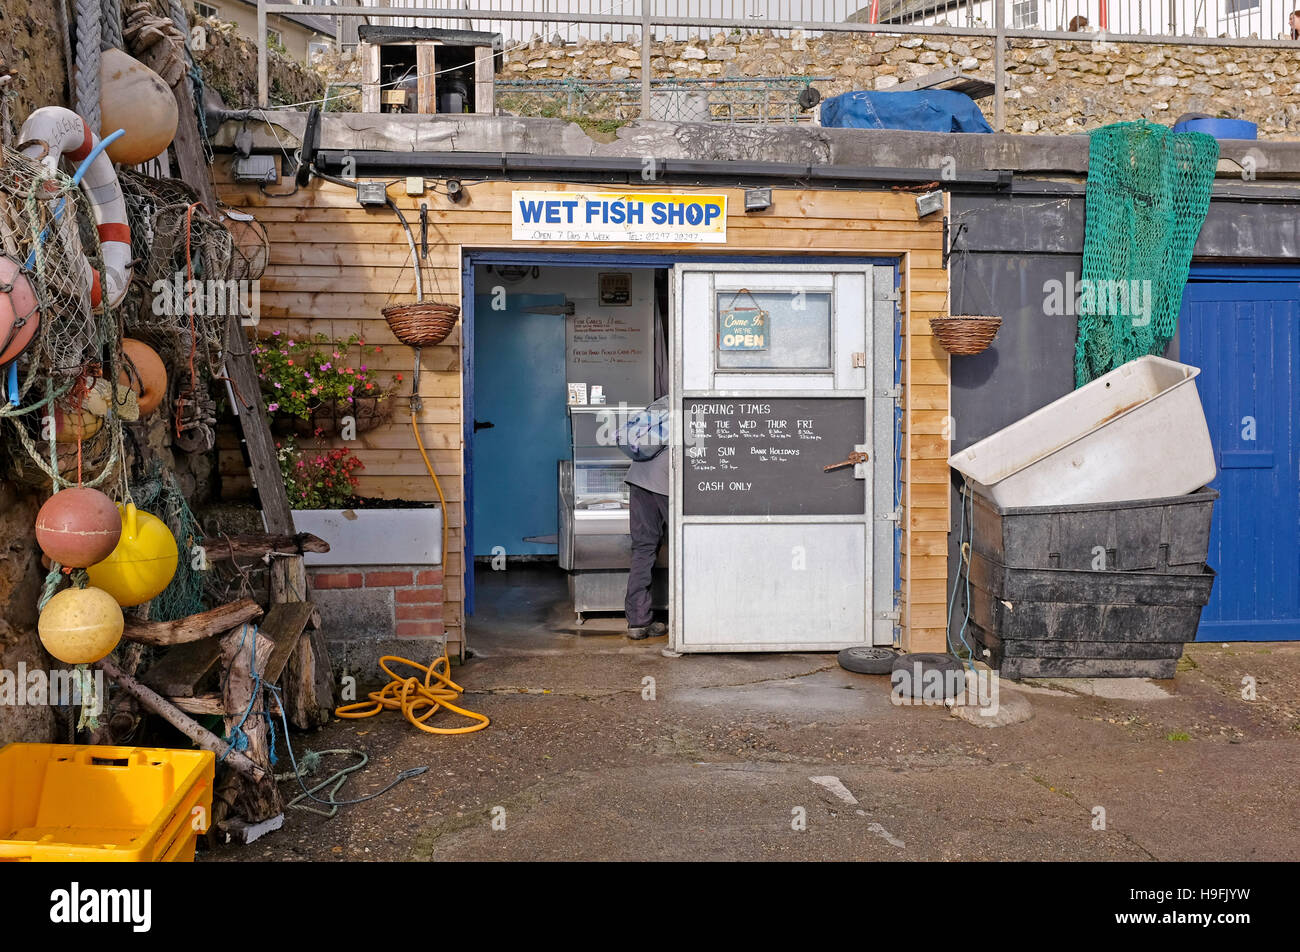 Wet Fish Shop on beach at Beer Devon West Country UK November 2016 - Stock Image